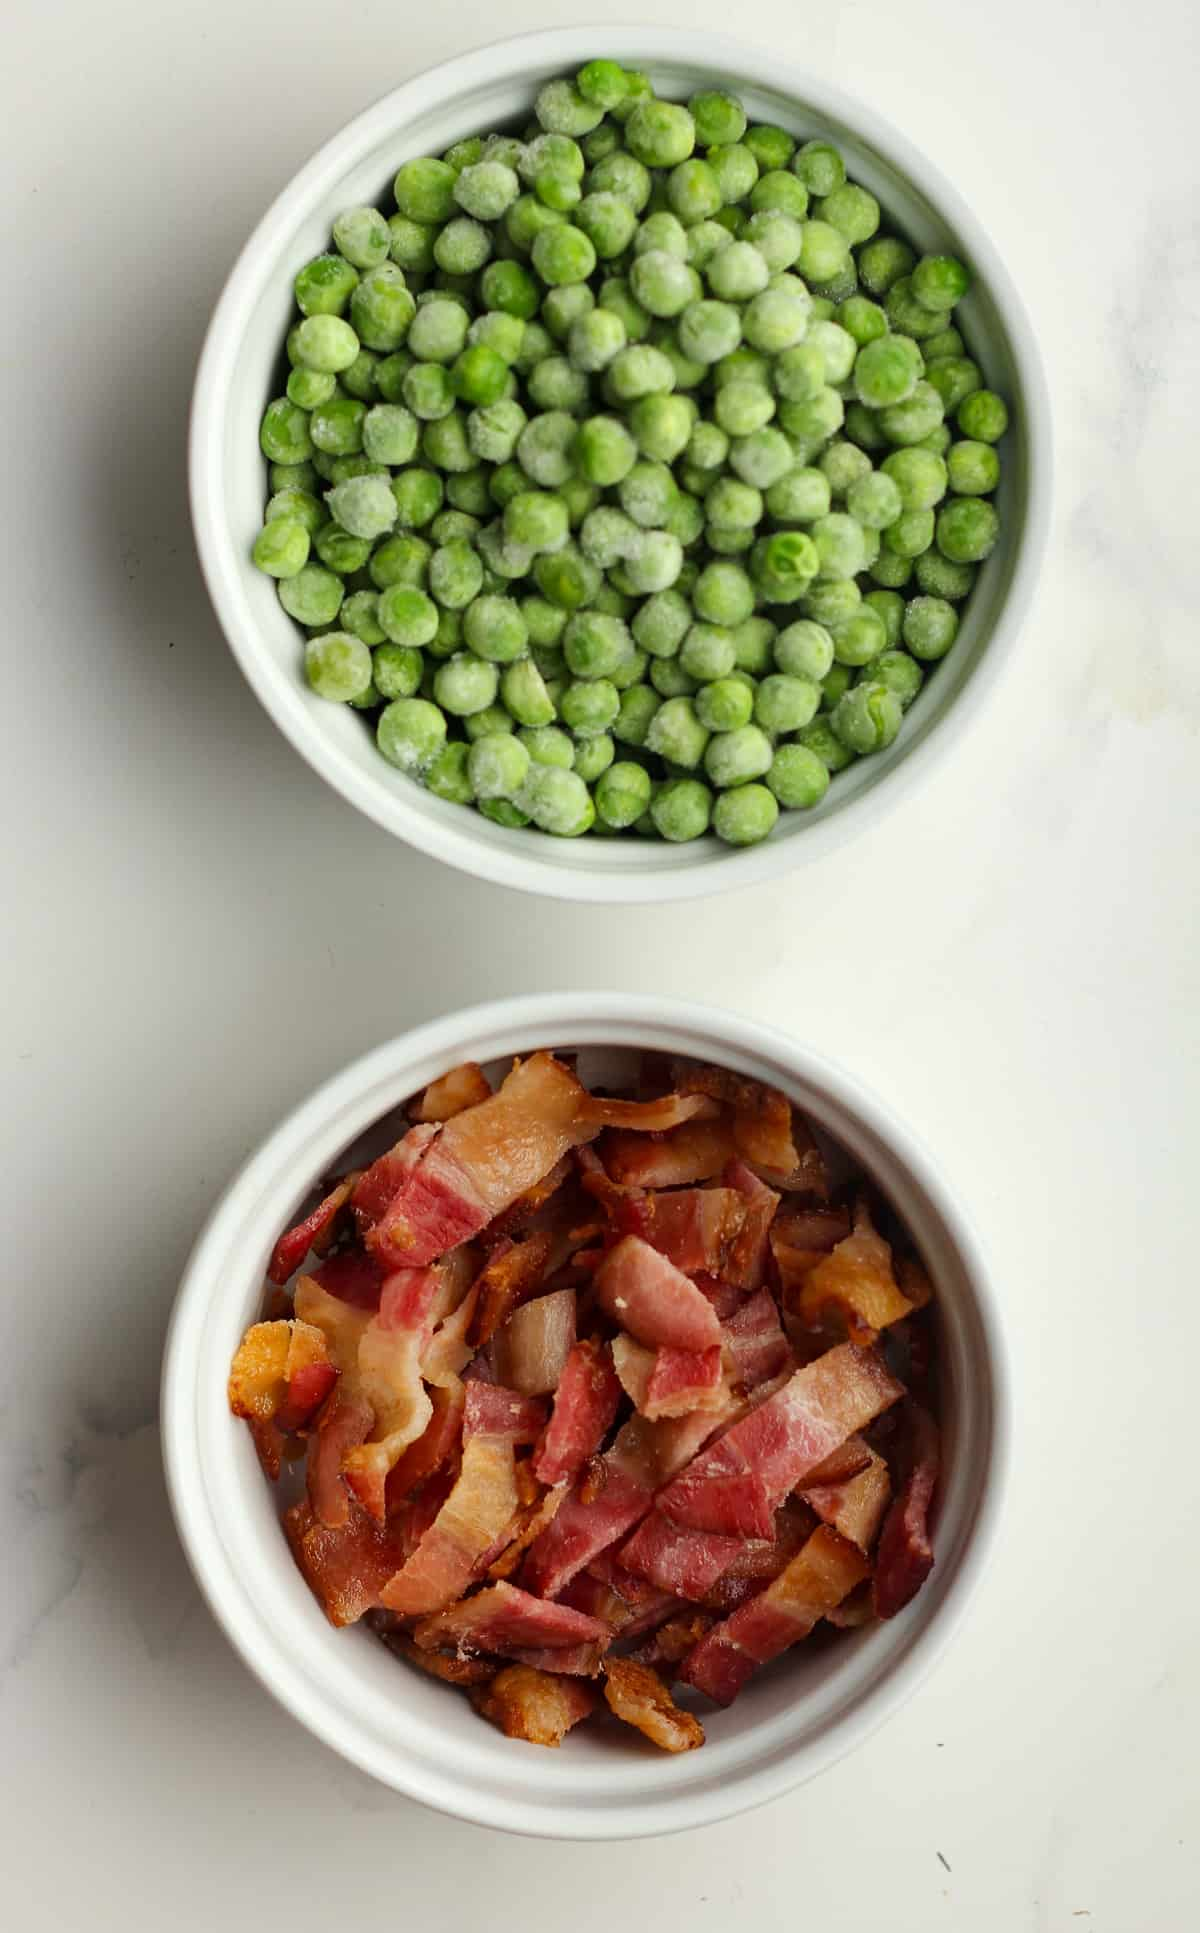 A bowl for the frozen peas and the cooked bacon.